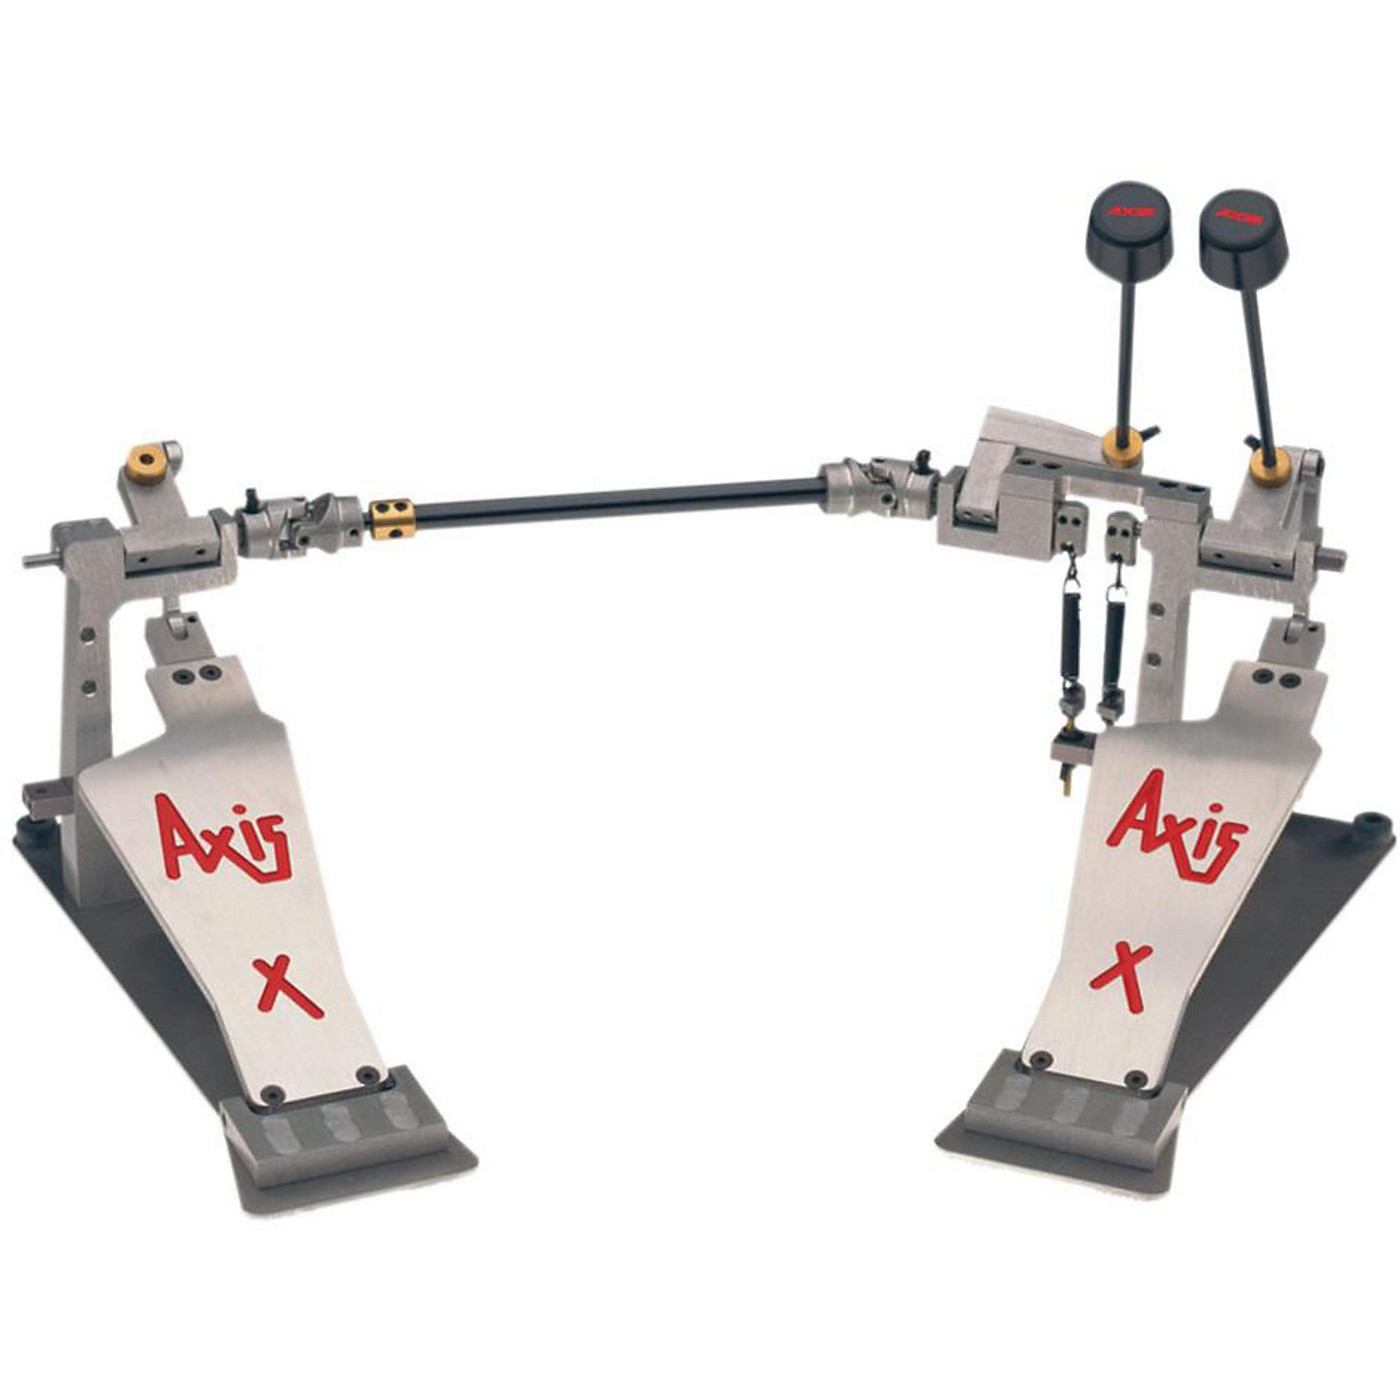 Axis X Double Bass Drum Pedal thumbnail